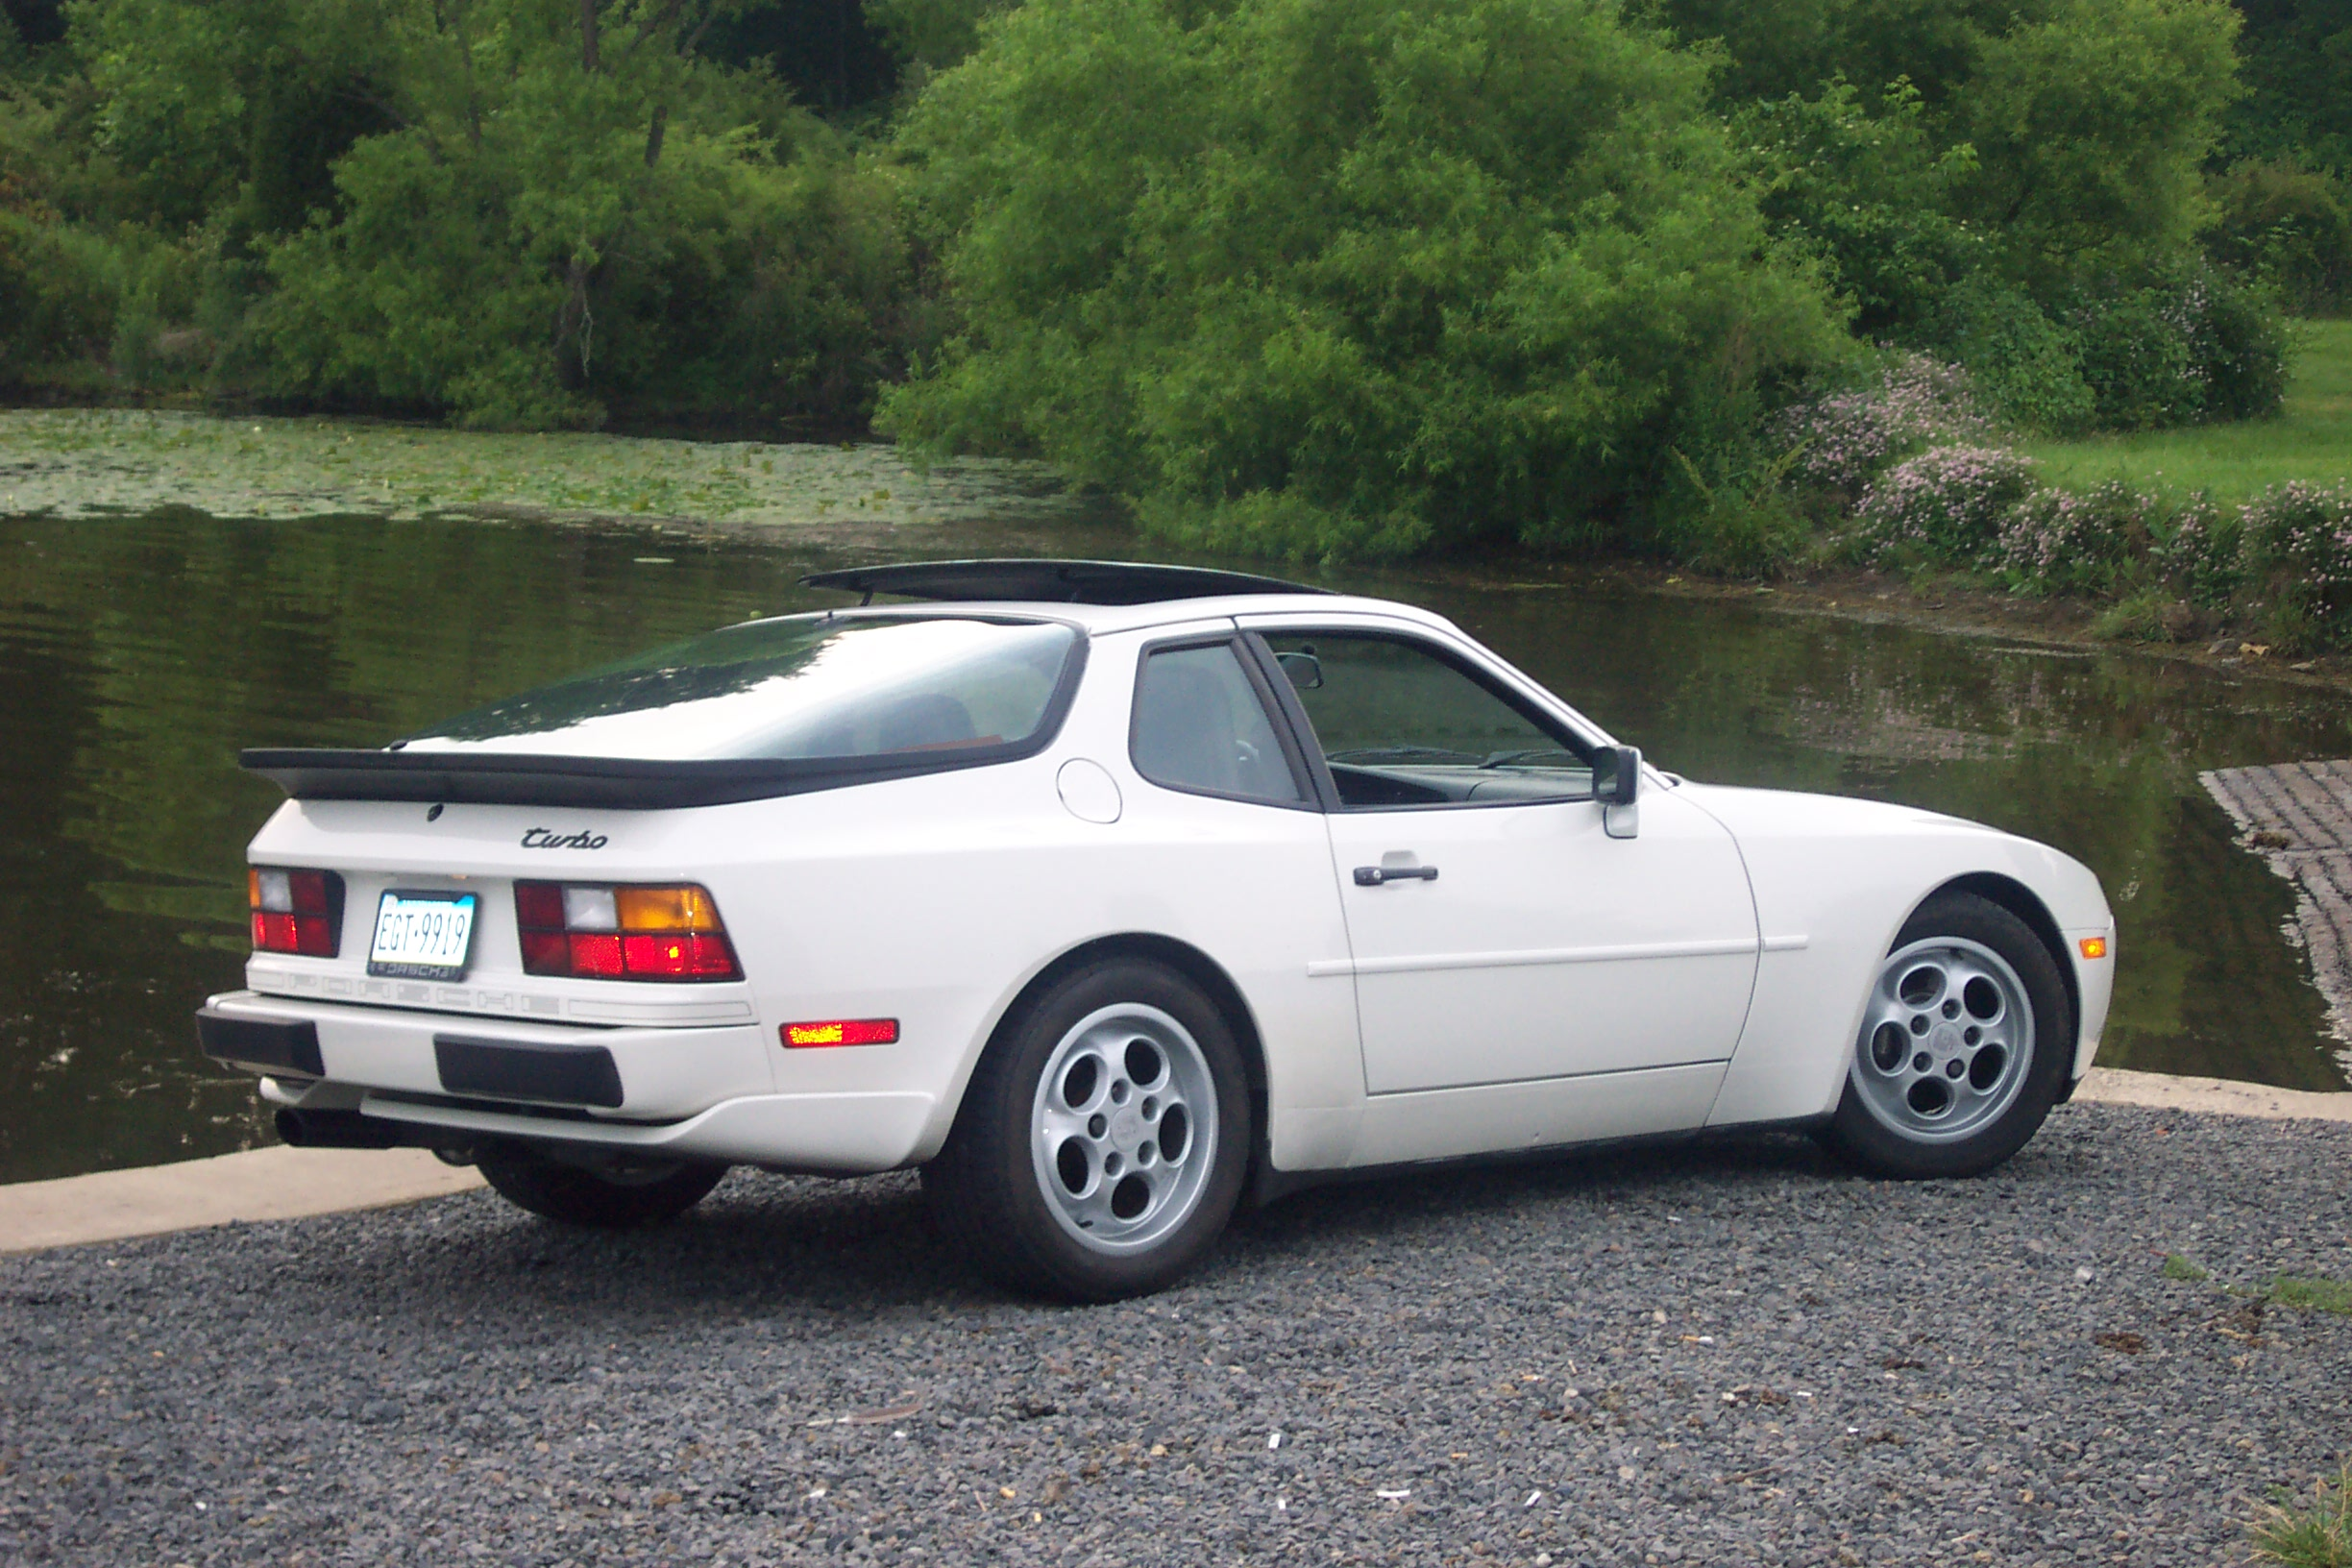 File:1987 Porsche 944 Turbo.JPG